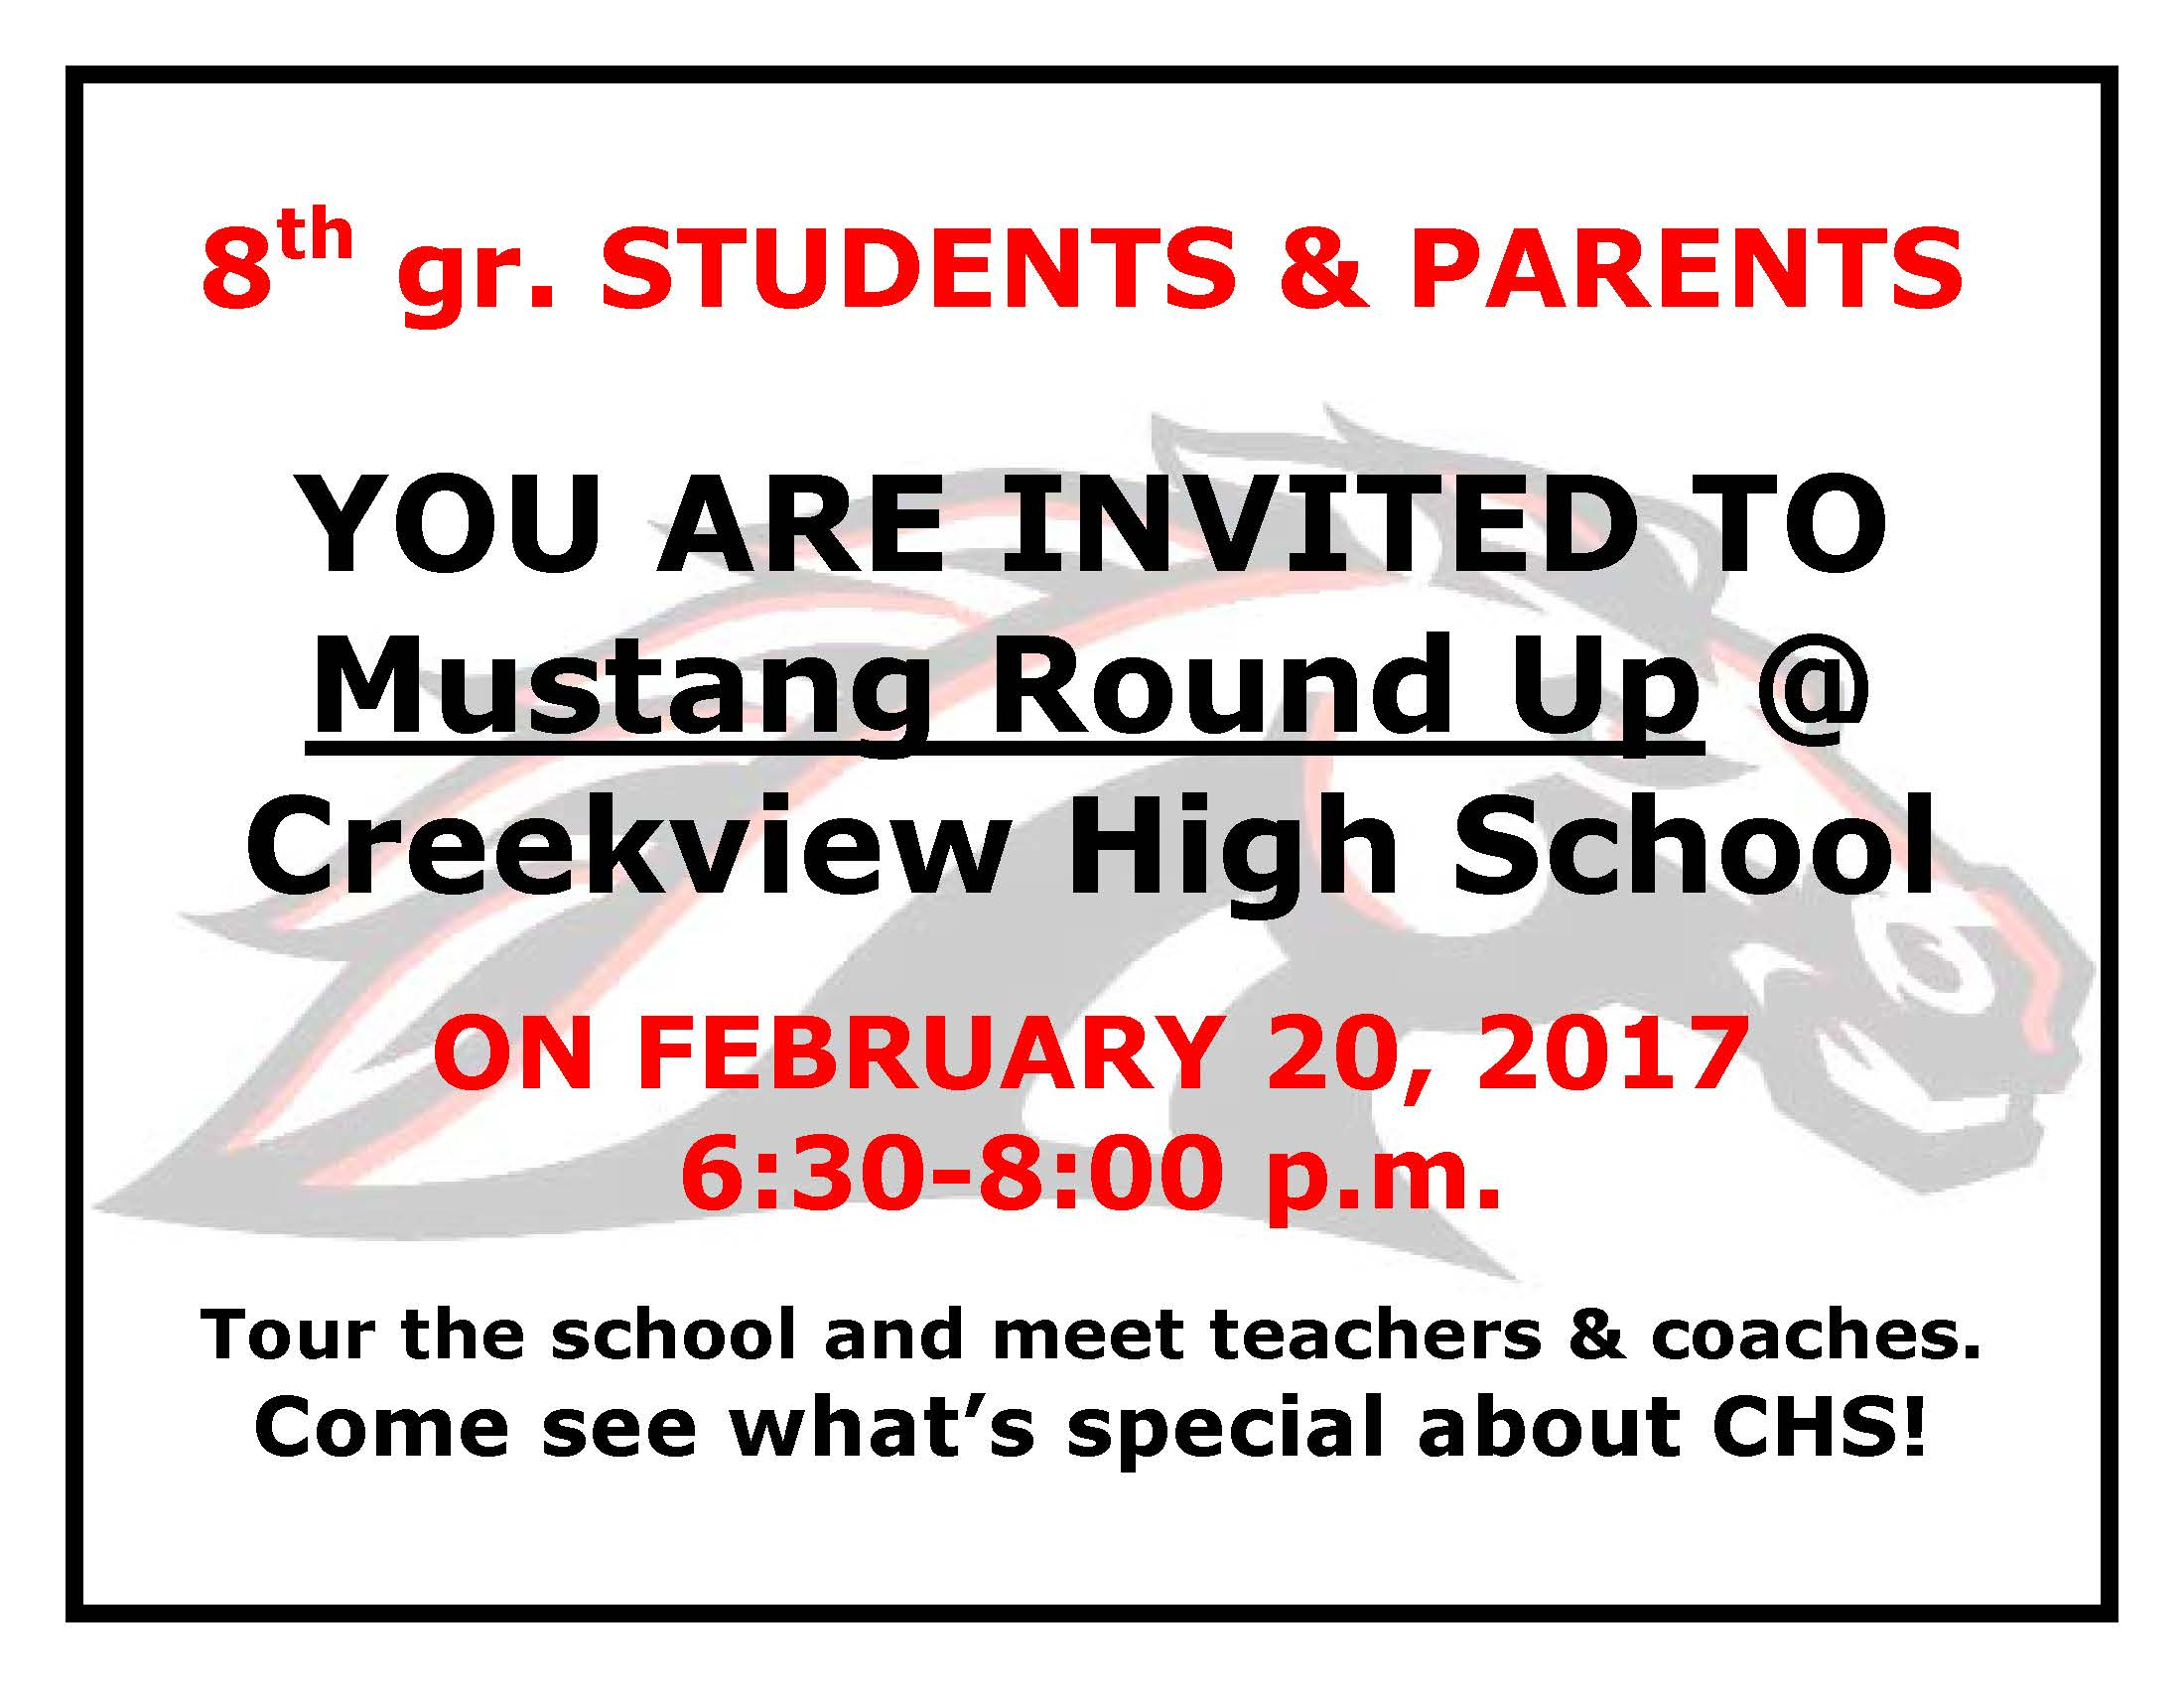 8th grade STUDENTS & PARENTS YOU ARE INVITED TO Mustang Round Up @ Creekview High School ON FEBRUARY 20, 2017 6:30-8:00 p.m. Tour the school and meet teachers & coaches. Come see what's special about CHS!